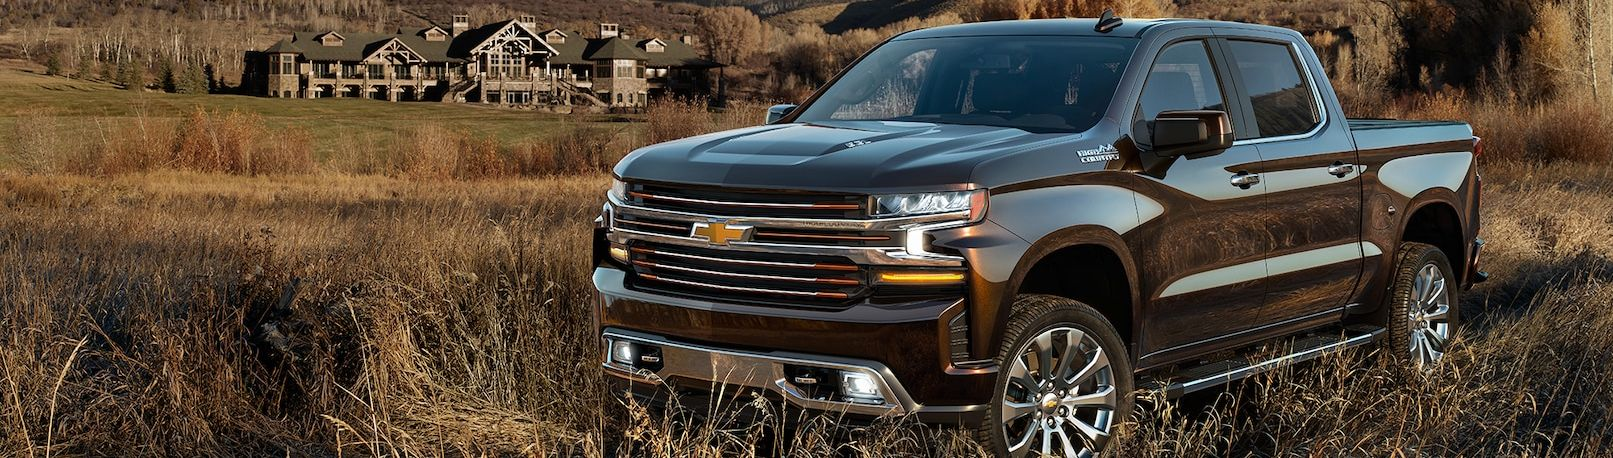 2019 Chevrolet Silverado Preview In Youngstown, OH